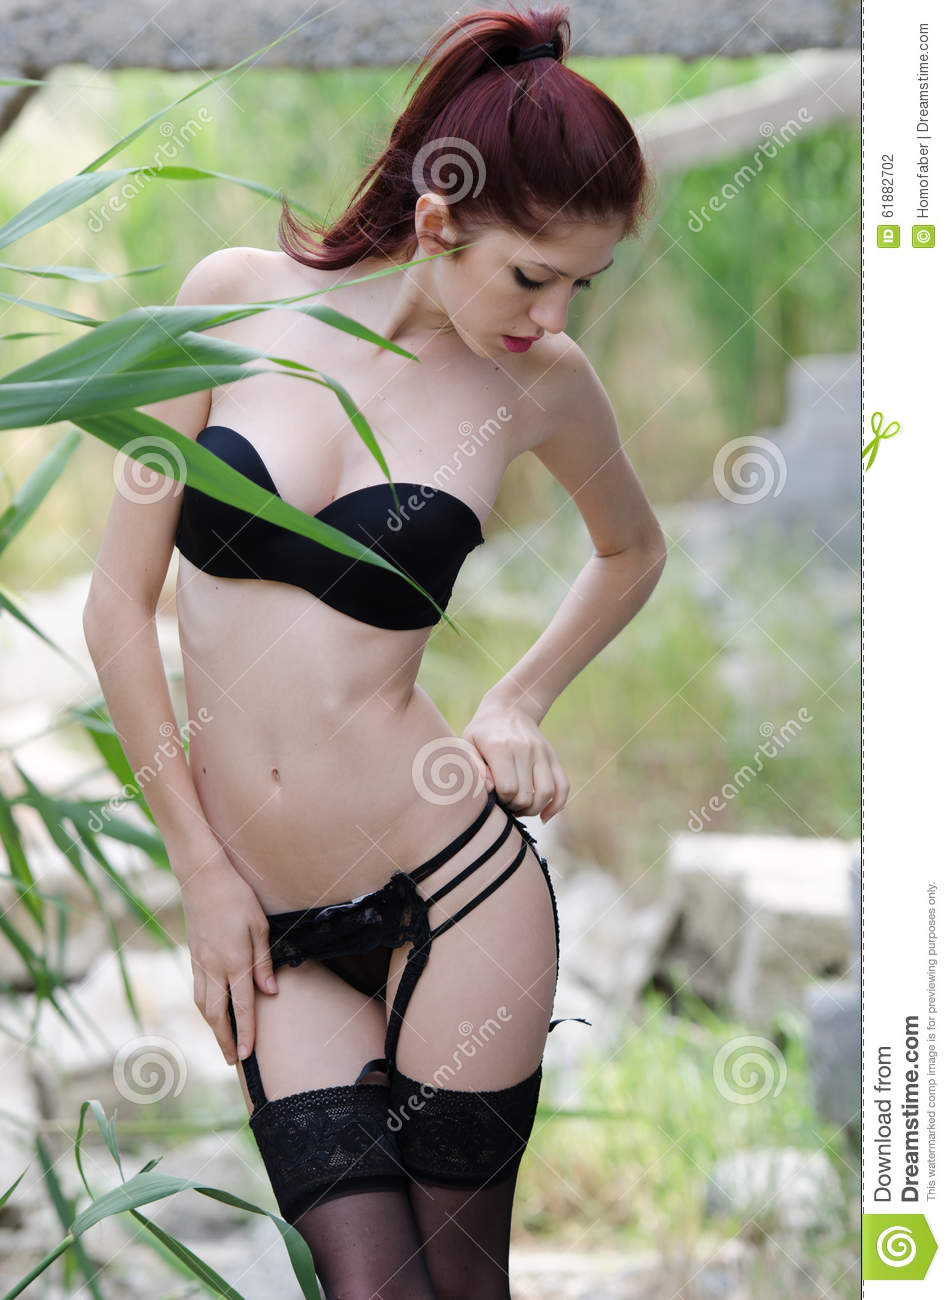 fa5f8484230 Young Woman Wearing Lingerie In Wild Landscape Stock Photo - Image ...